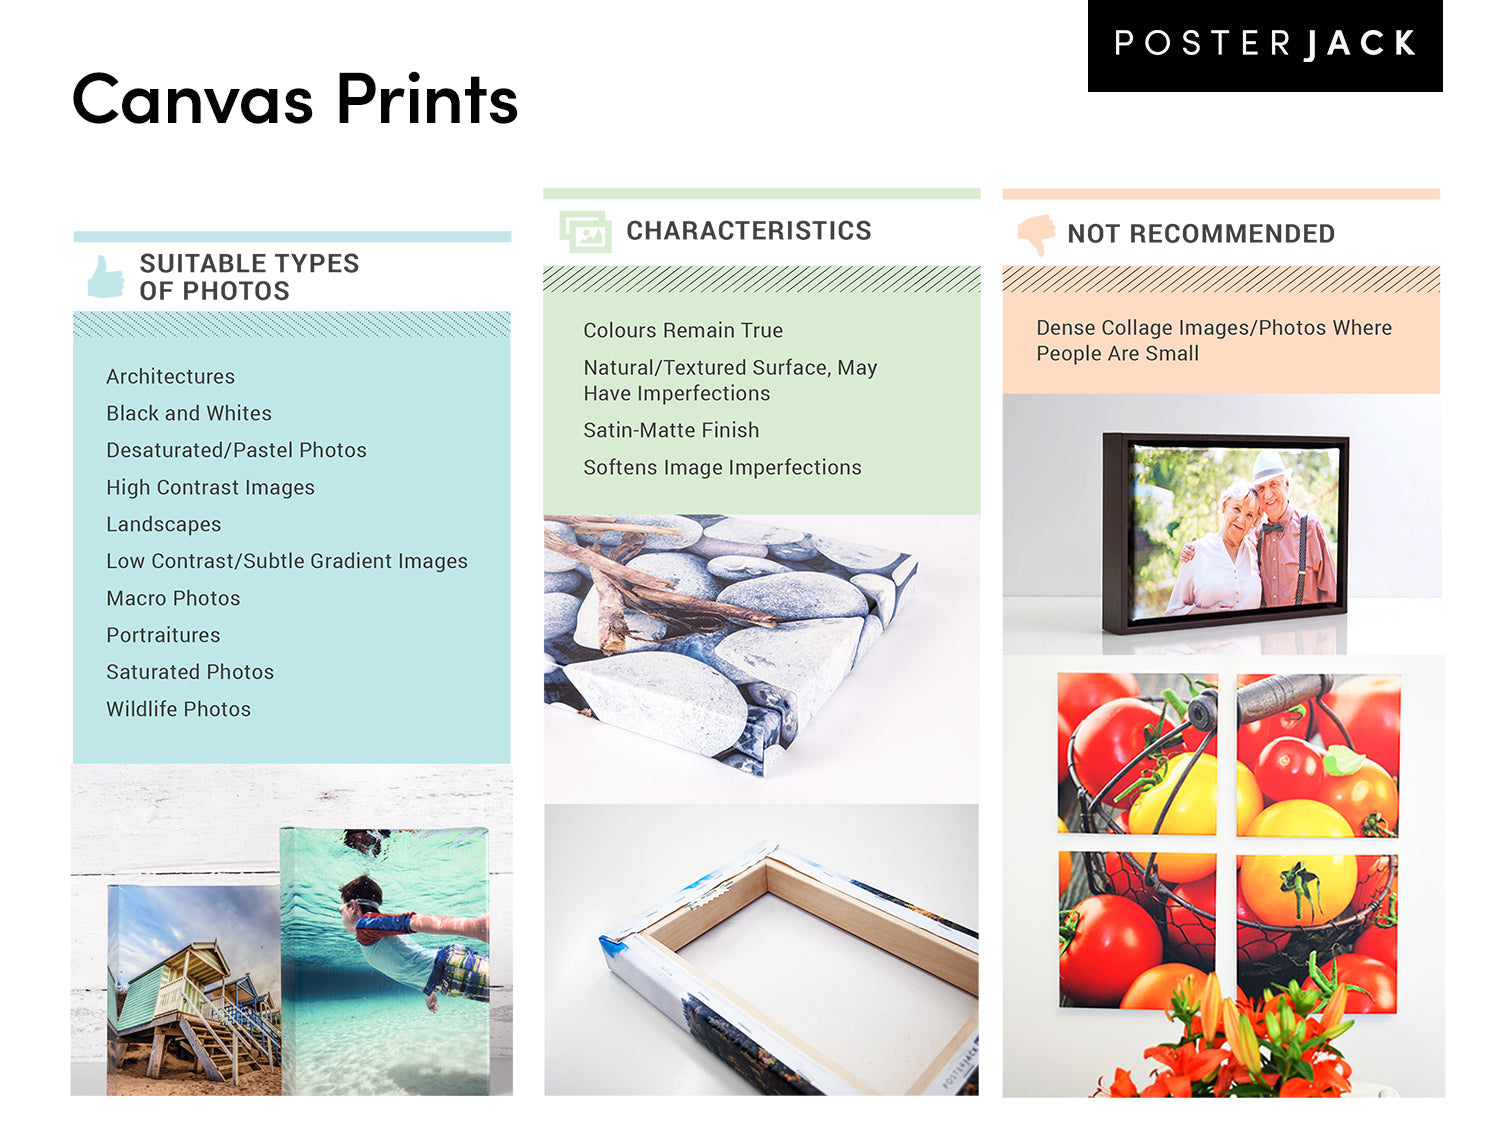 Posterjack Canvas Prints chart showing suitable types of photos that look good printed on canvas